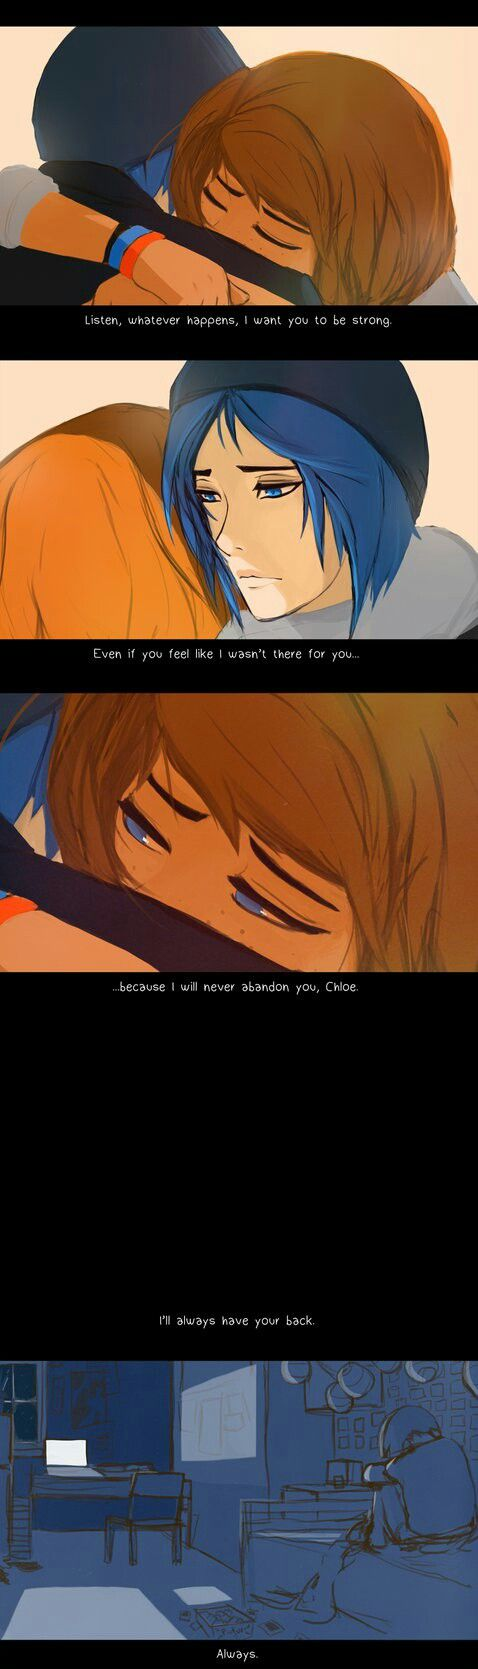 Life is Strange this artist and almost all life is Strange artist are trying to kill me with feels, now I'm crying